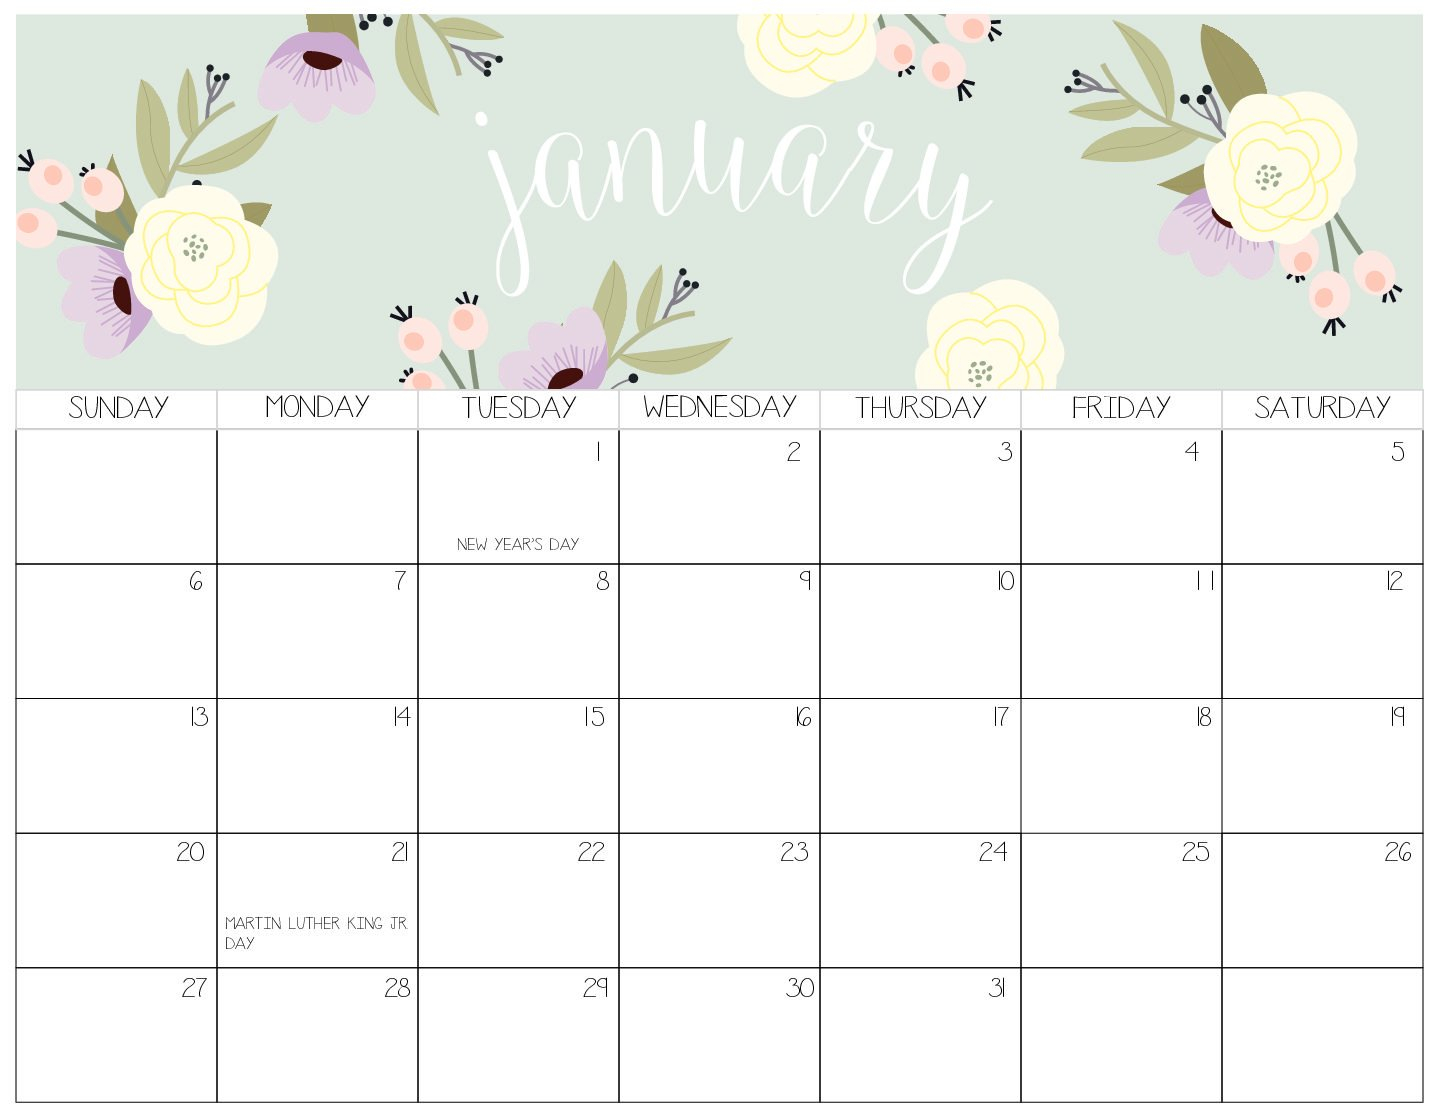 Index Of /wp Content/uploads/2018/07 Calendar 2019 Blog